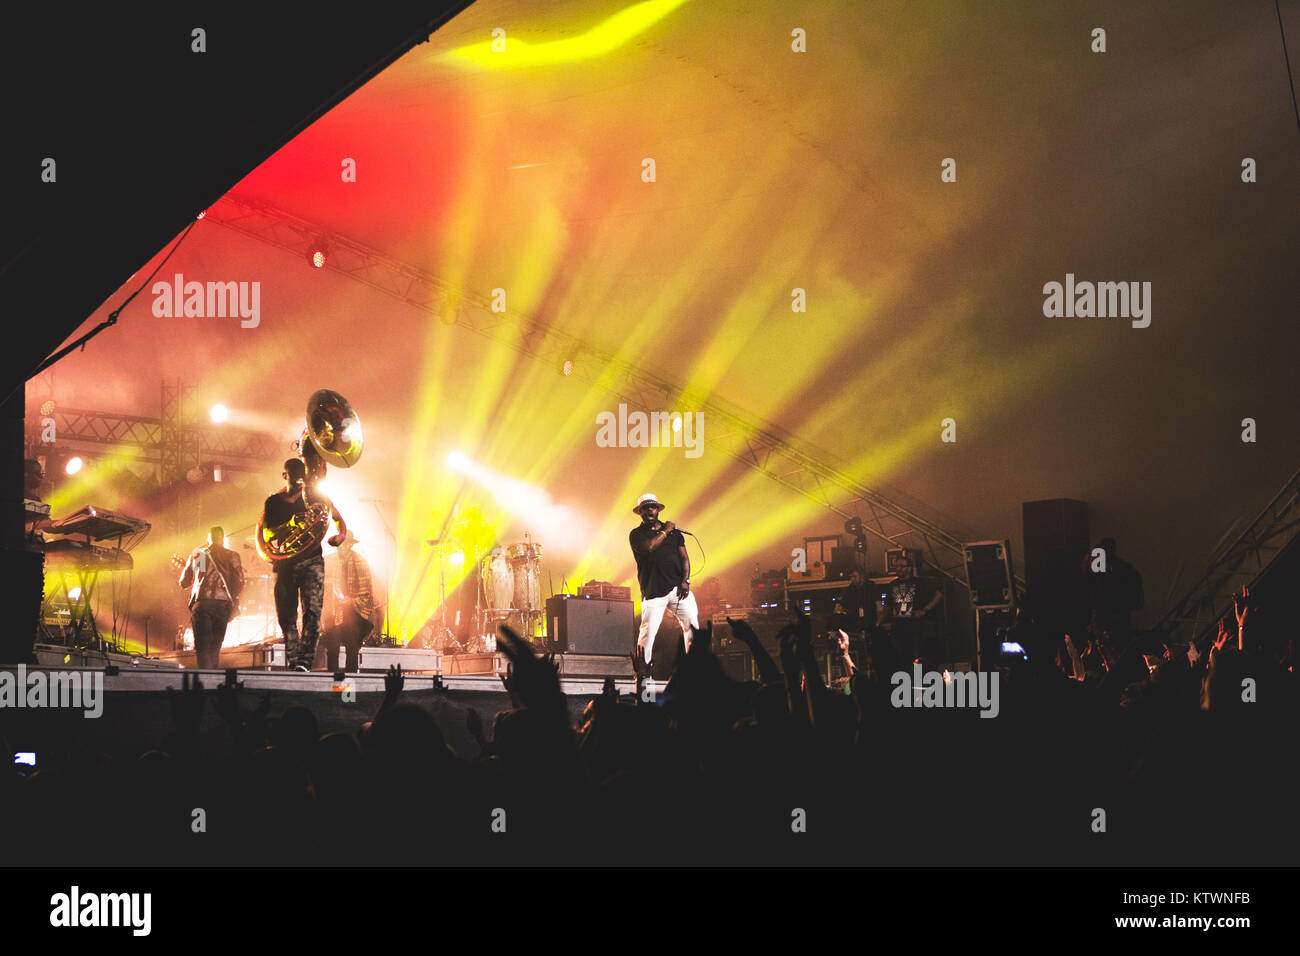 The American hip hop, rap and soul band The Roots performs a live concert Vanguard Festival 2014 in Copenhagen. Stock Photo